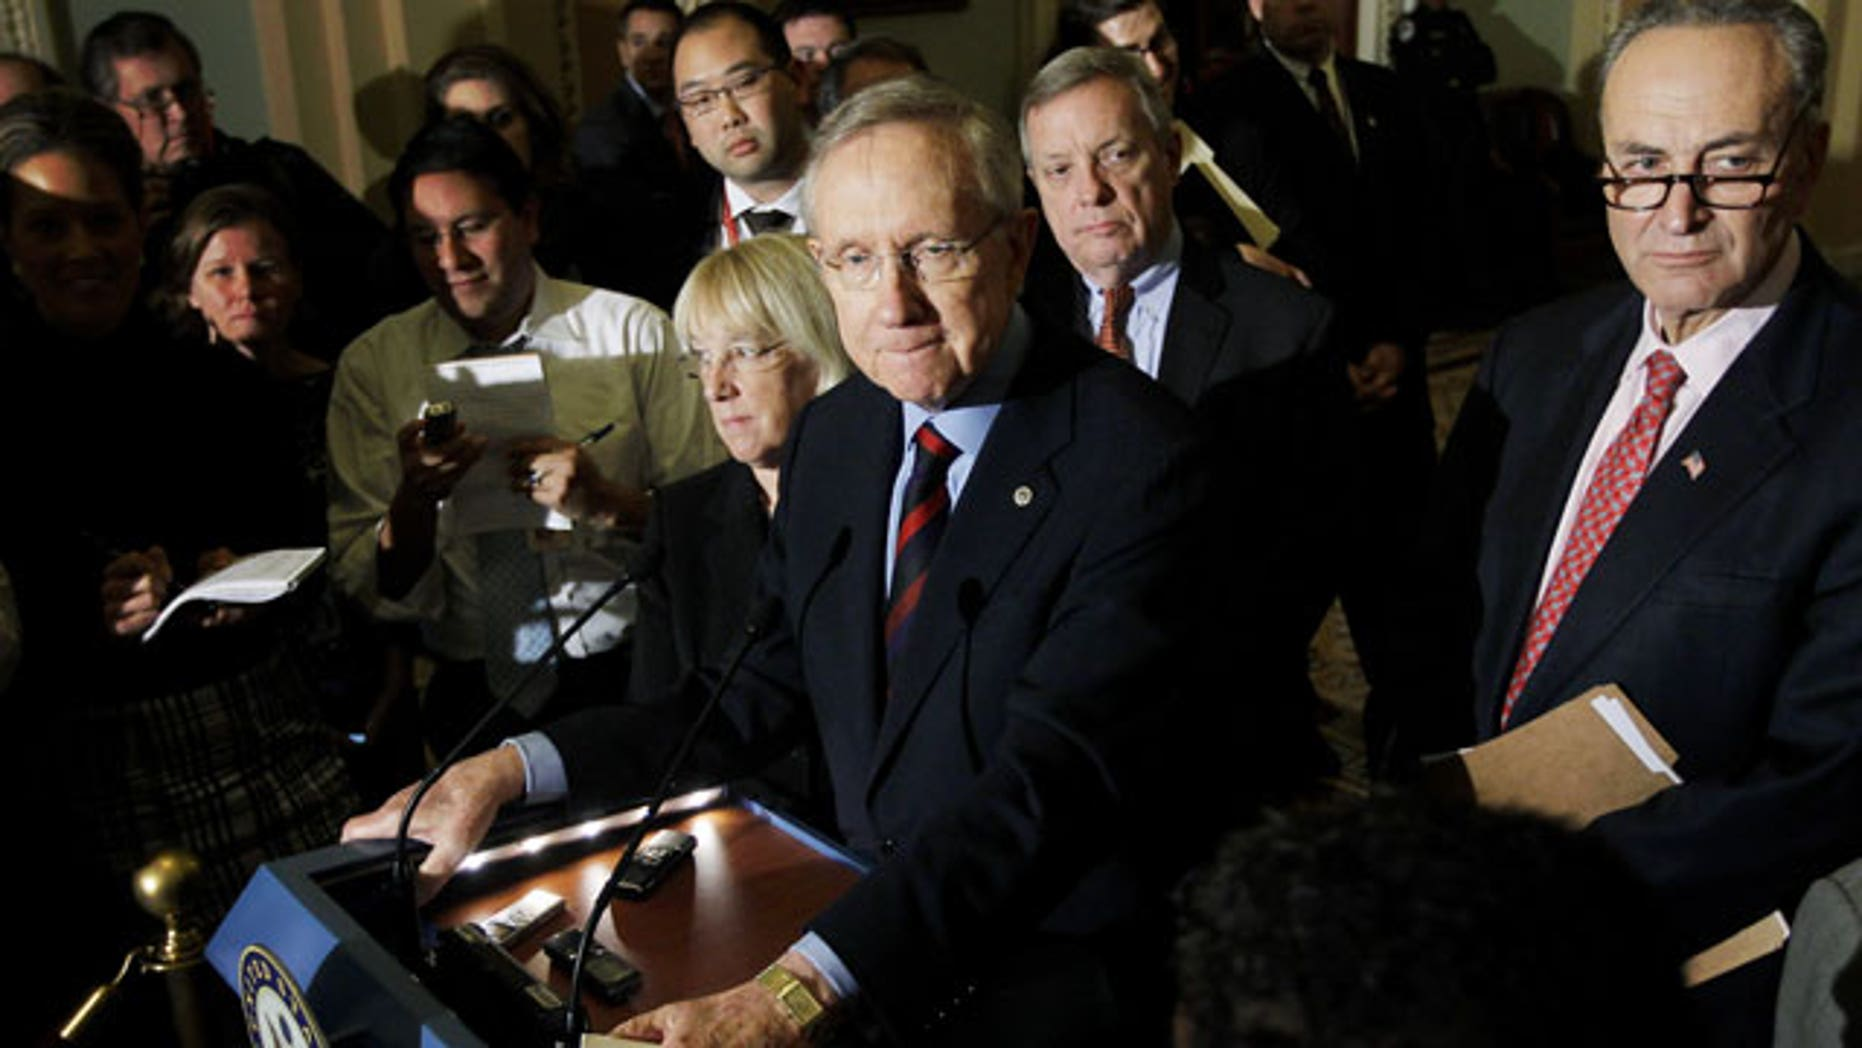 December 1, 2011: Senate Majority Leader Harry Reid of Nev., center, accompanied by Sen. Patty Murray, D-Wash., Senate Majority Whip Richard Durbin of Ill., and Sen. Charles Schumer, D-N.Y., speaks to reporters about extending the payroll tax cut on Capitol Hill in Washington.